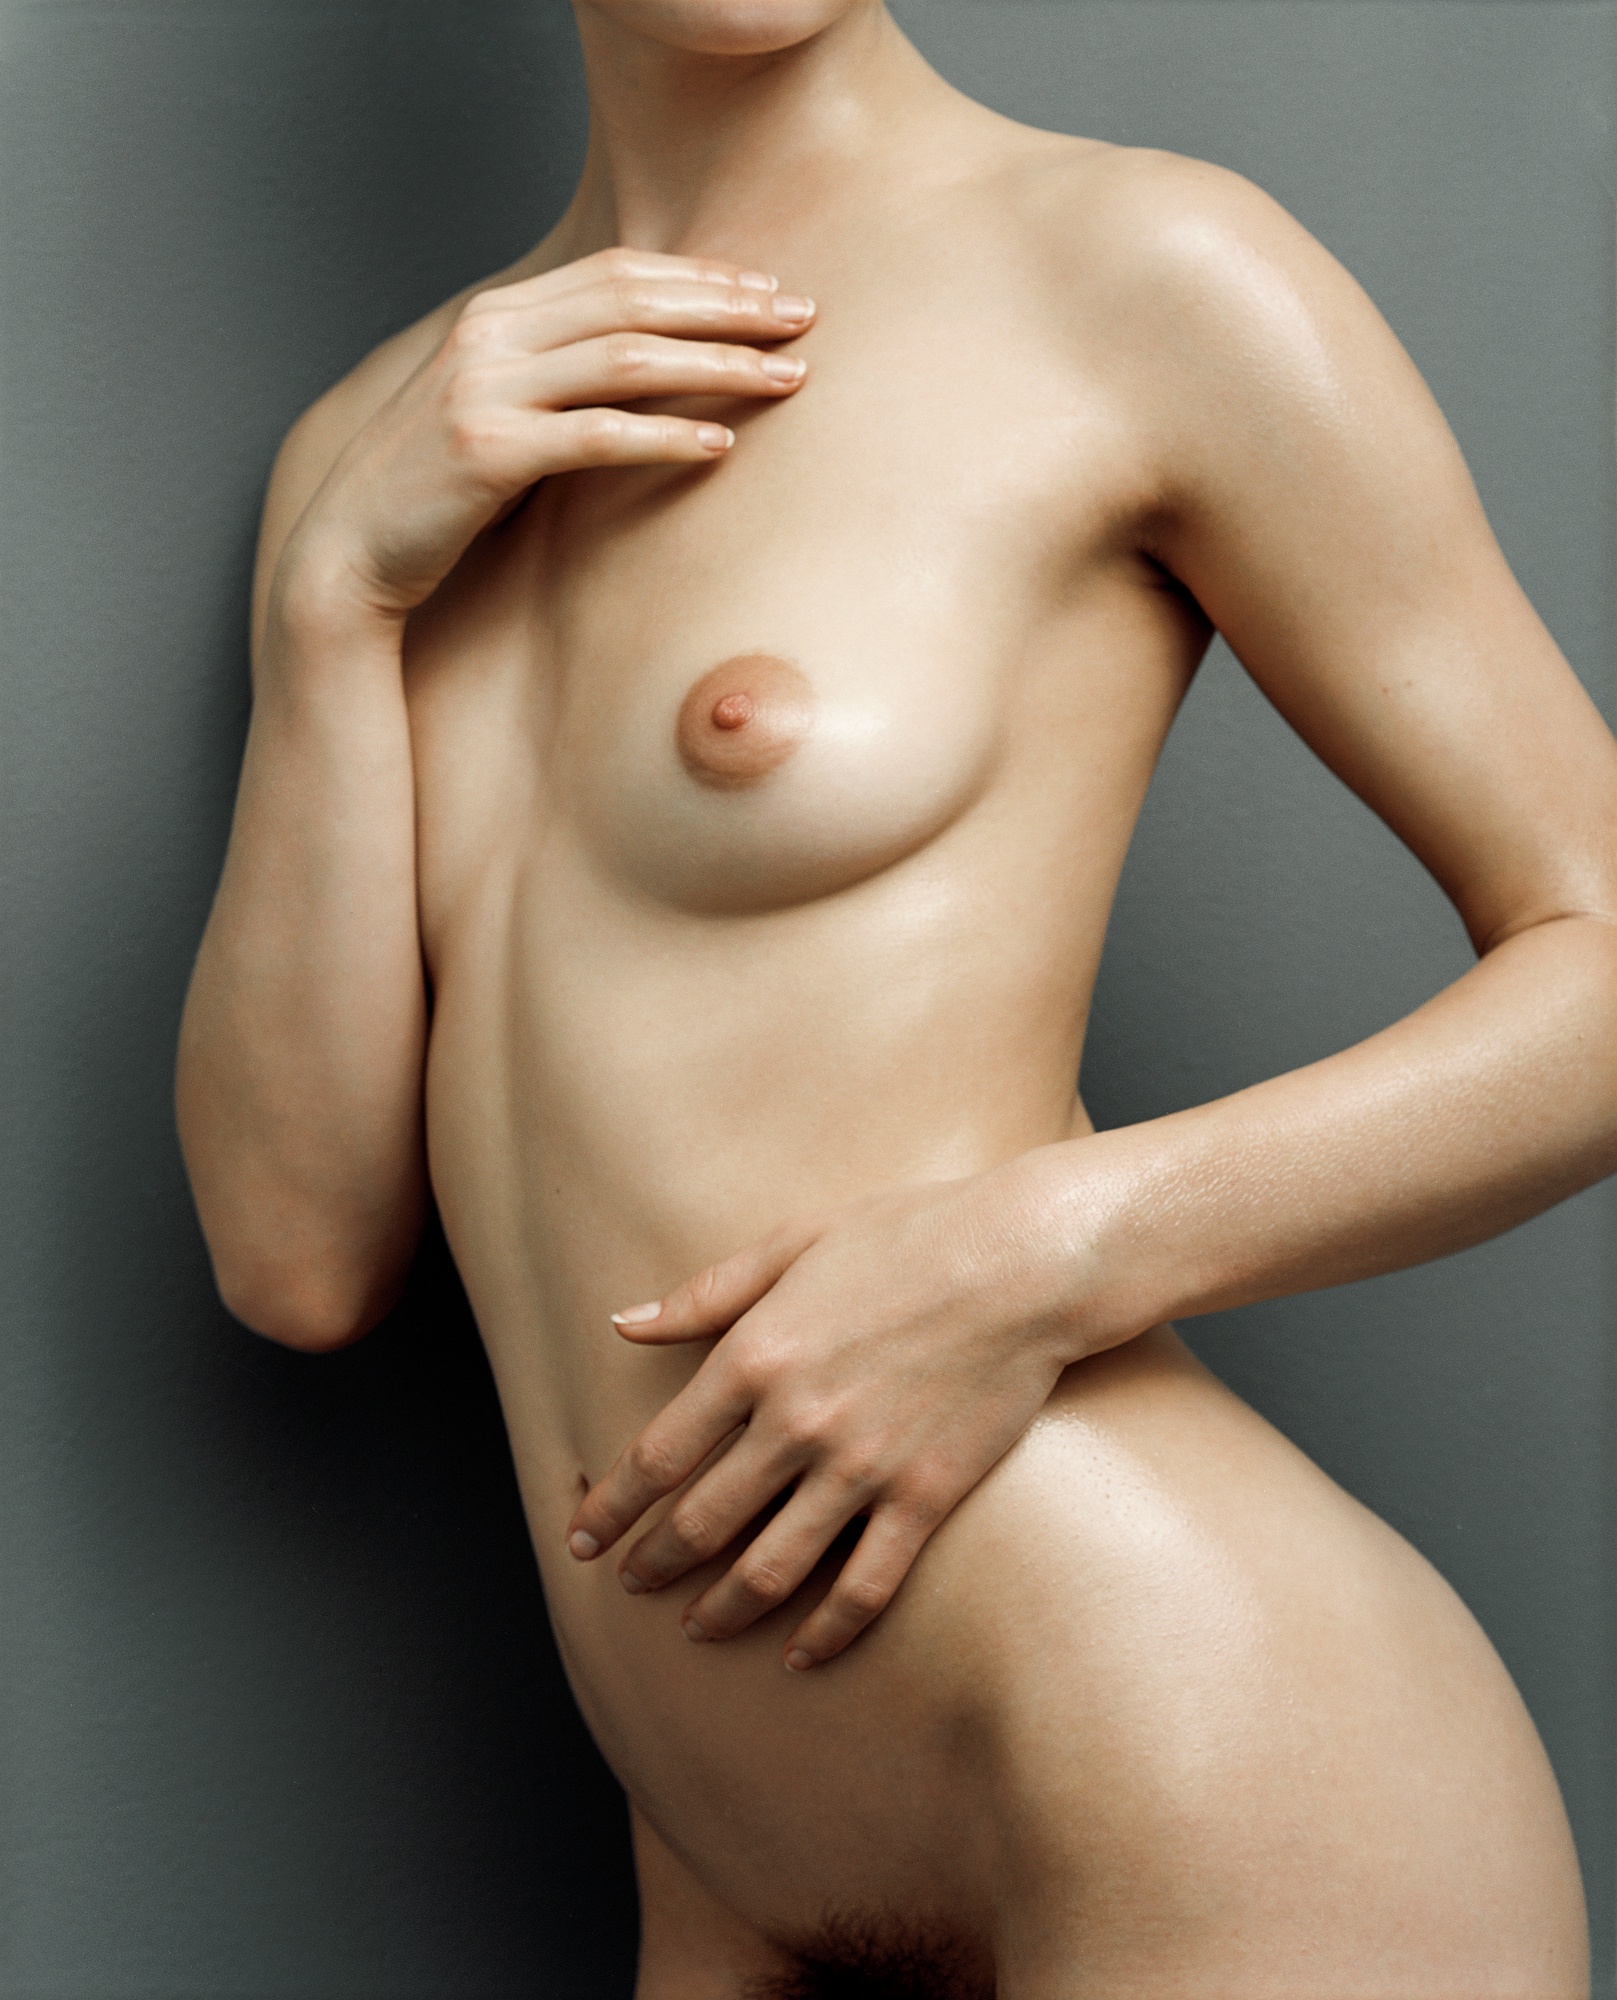 Large_Nude_flair_490822-9C_12.jpg